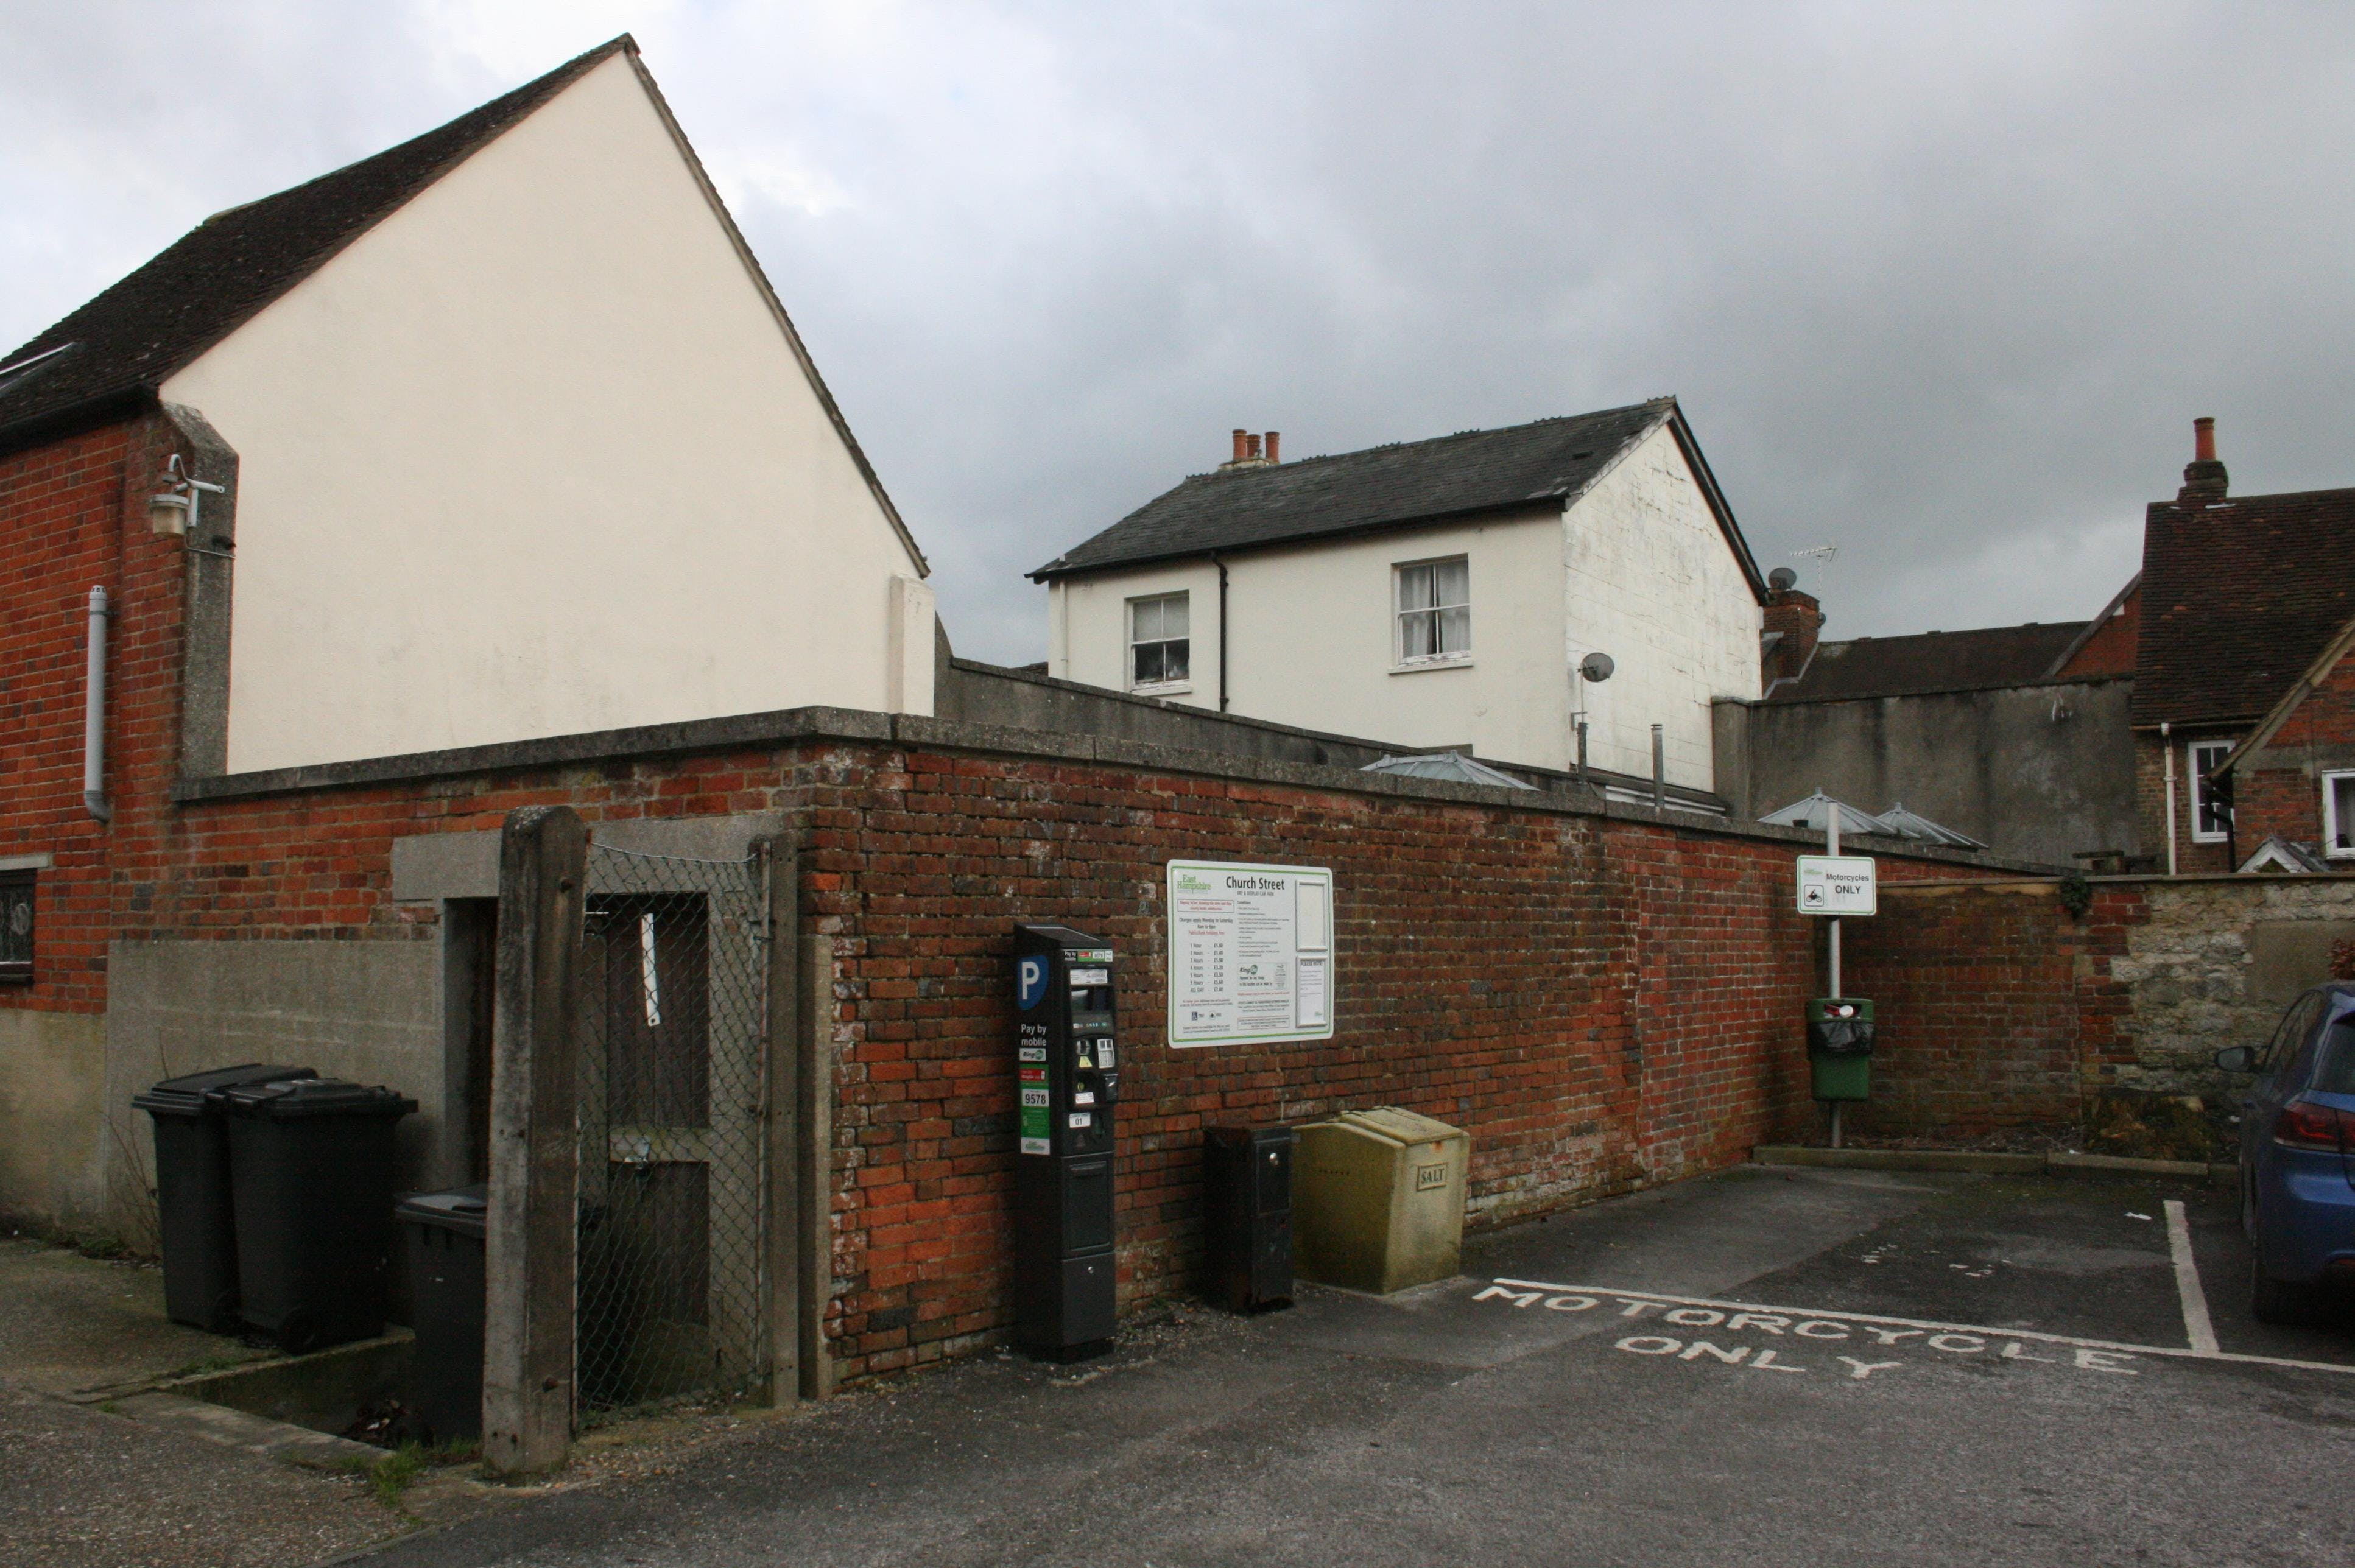 8 Normandy Street, Alton, Investments / Development (Land & Buildings) For Sale - IMG_0678.JPG